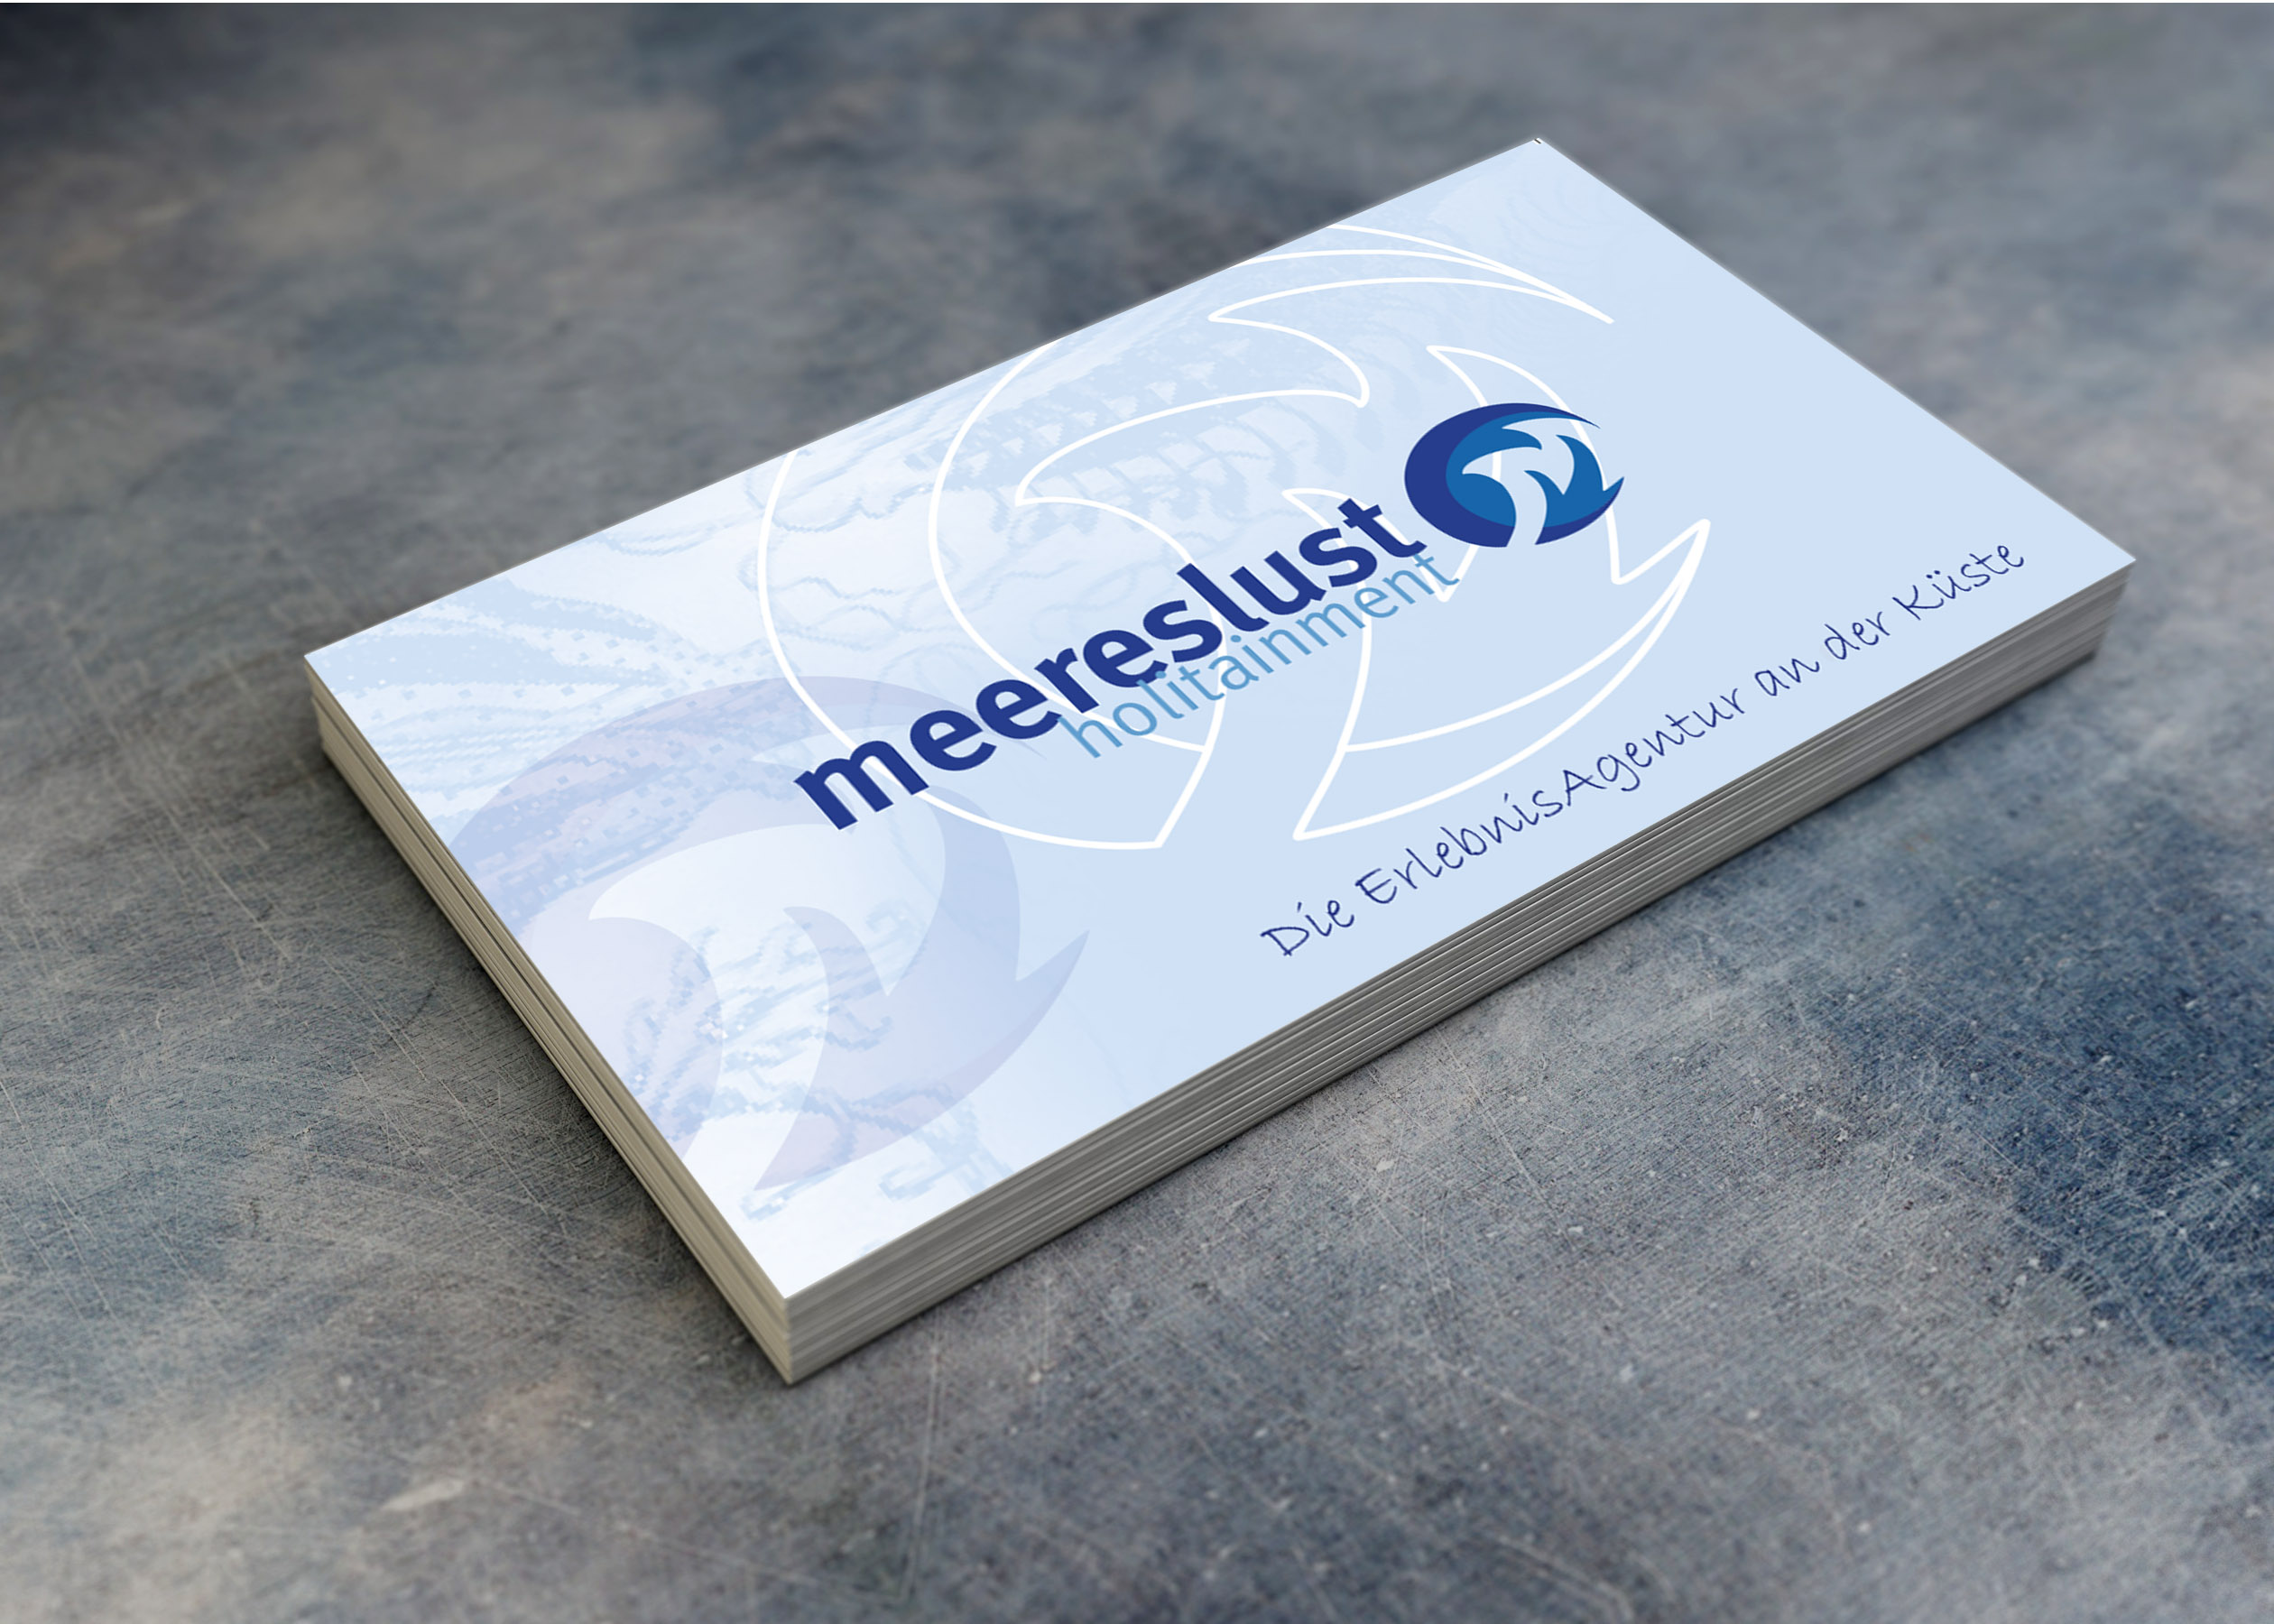 meereslust_business-cardWeb